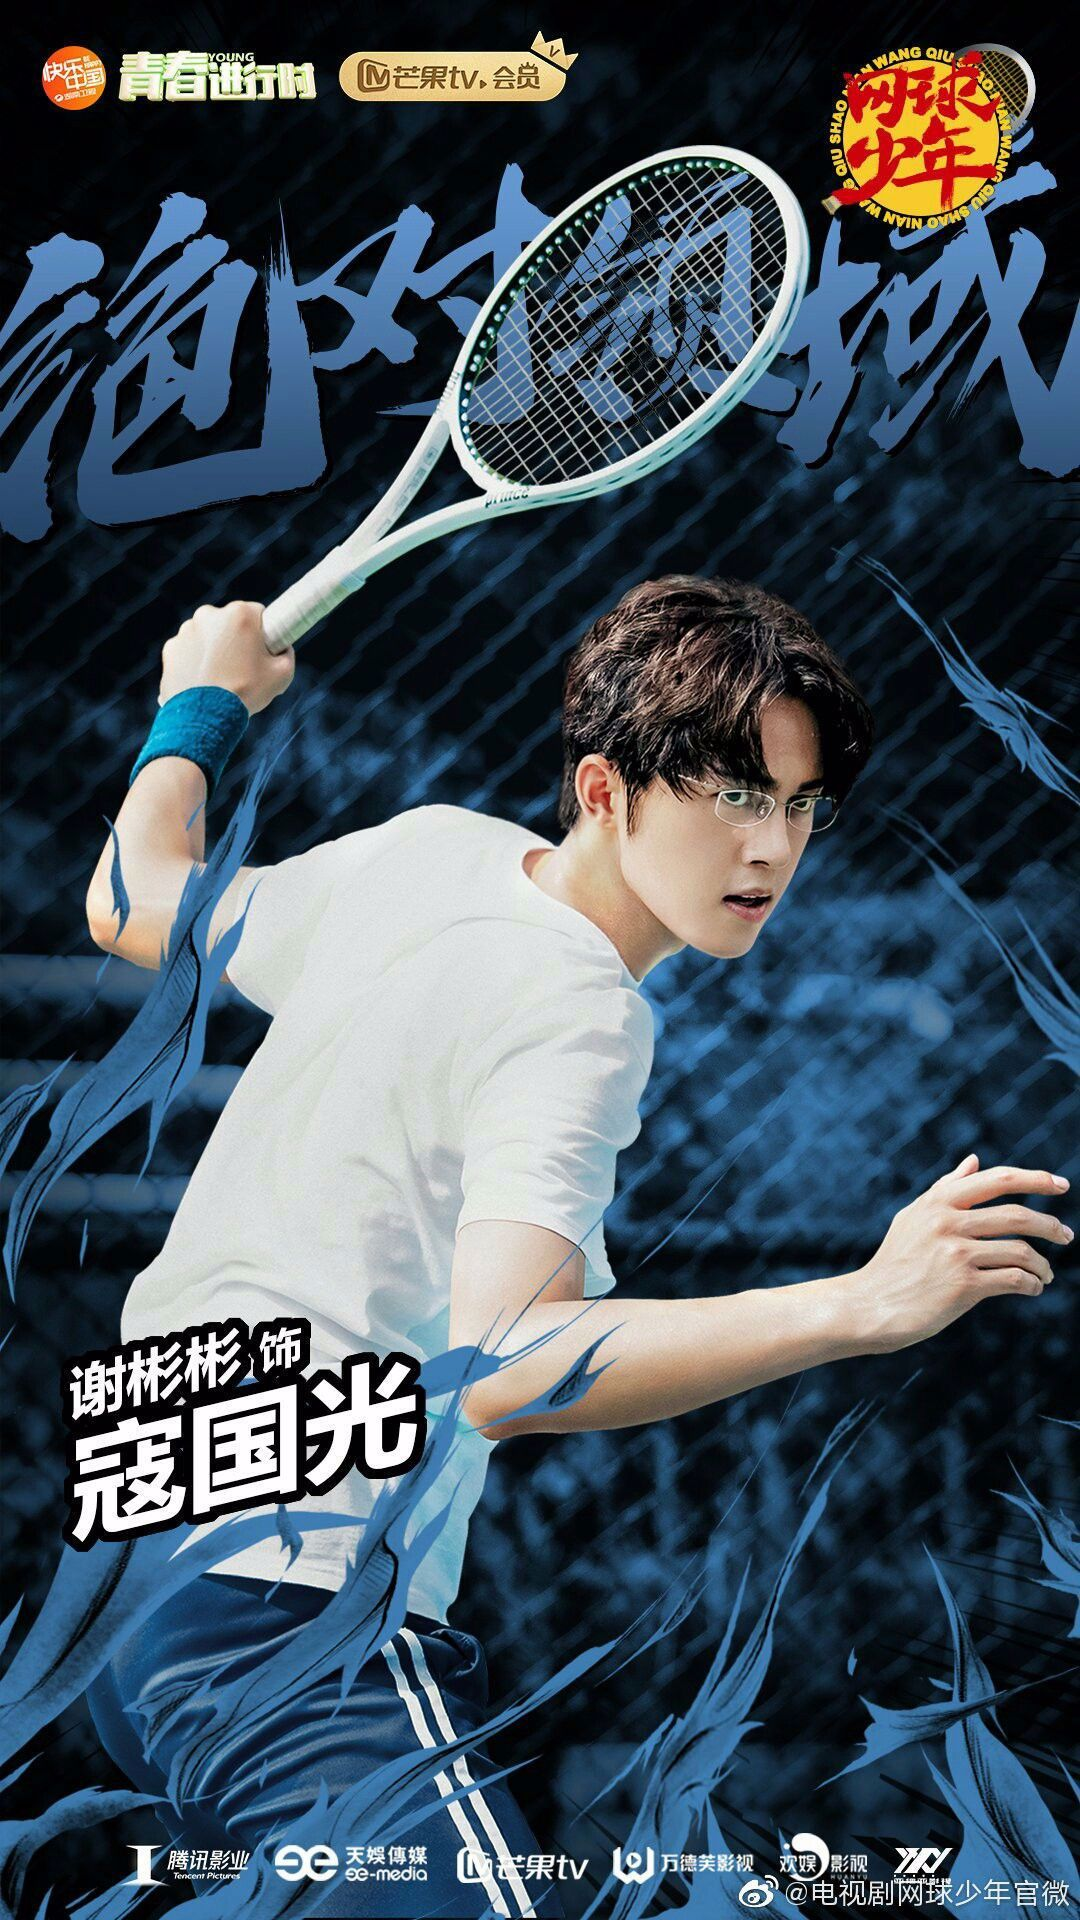 Pin By Salvador Schuster On 170 In 2020 The Prince Of Tennis Prince Of Tennis Anime Prince Tennis